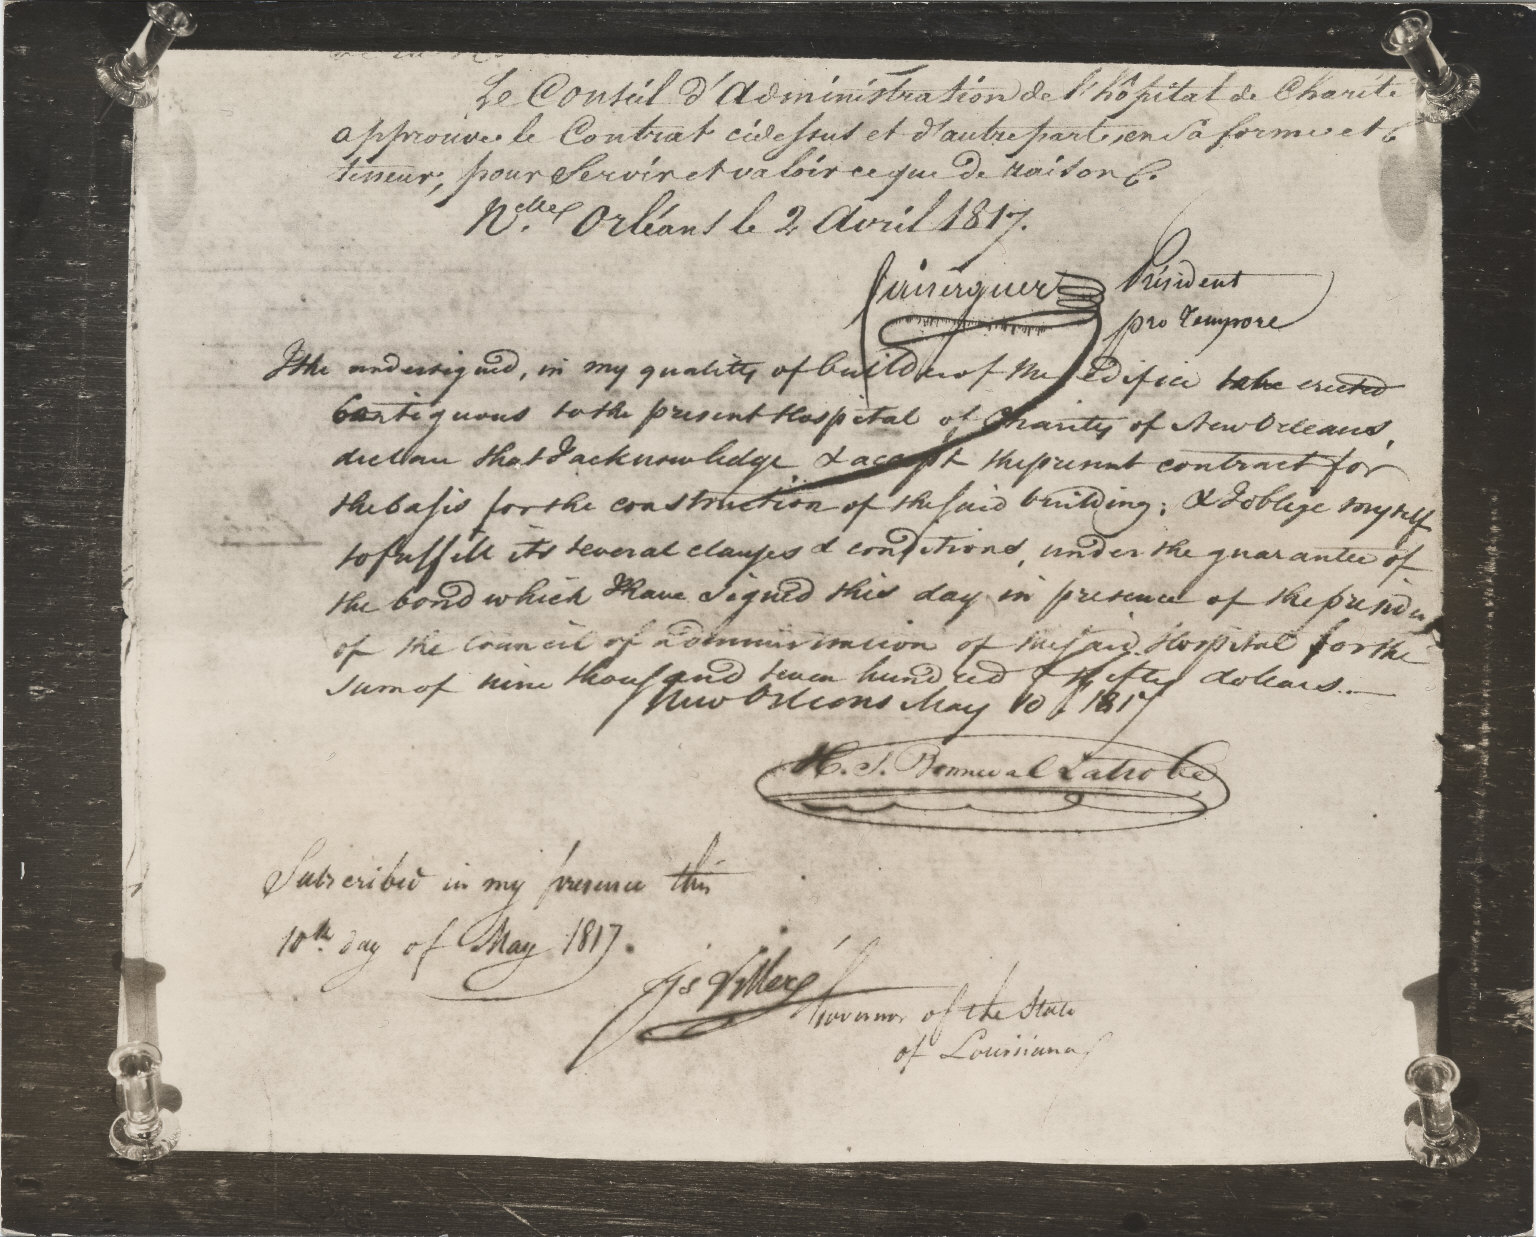 Document signed by Latrobe